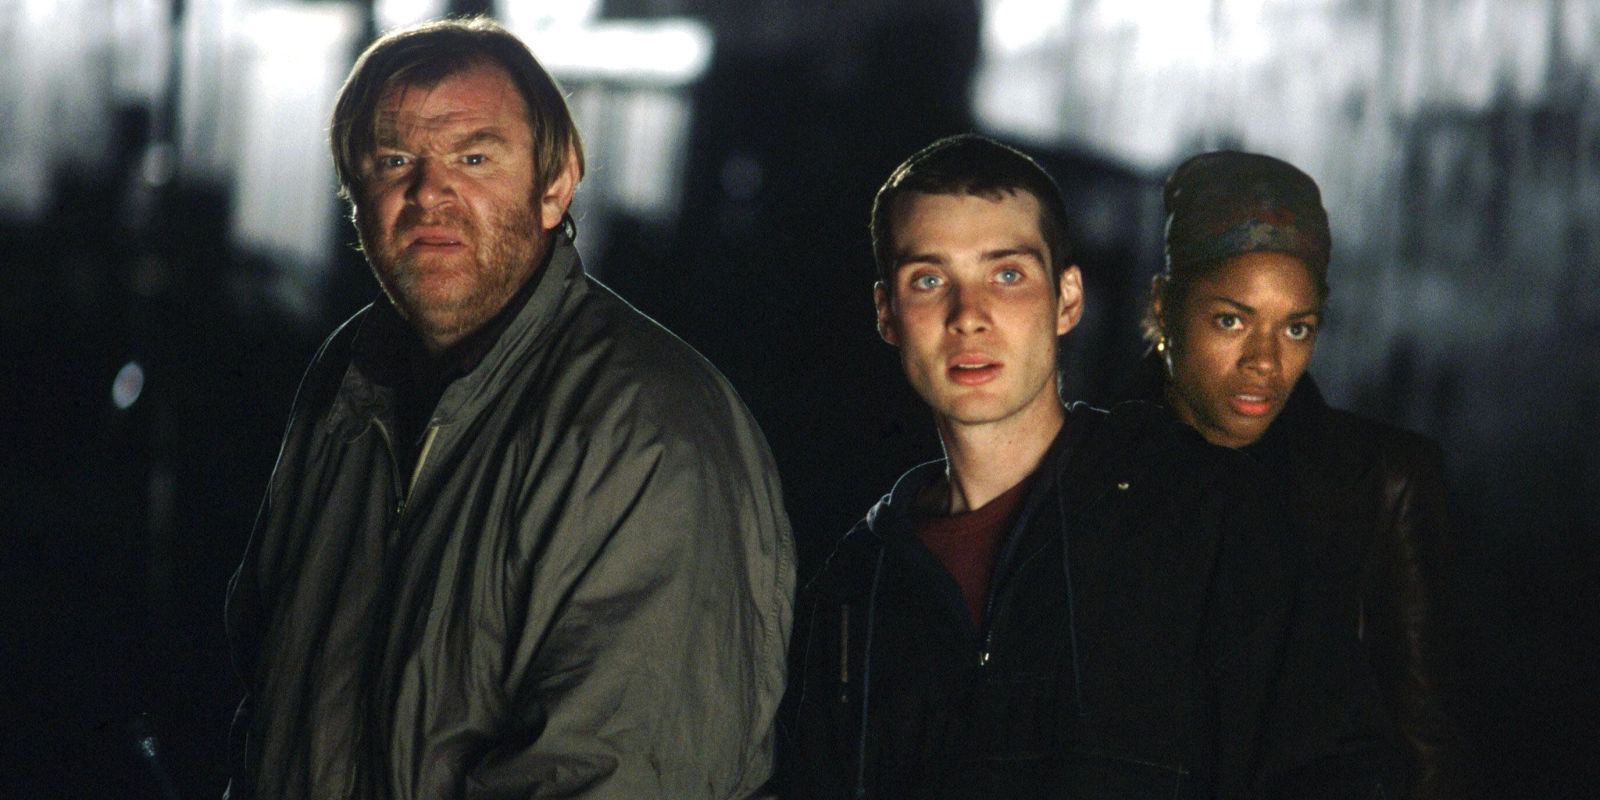 Brendan Gleeson, Cillian Murphy, Naomie Harris in 28 Days Later (2002)